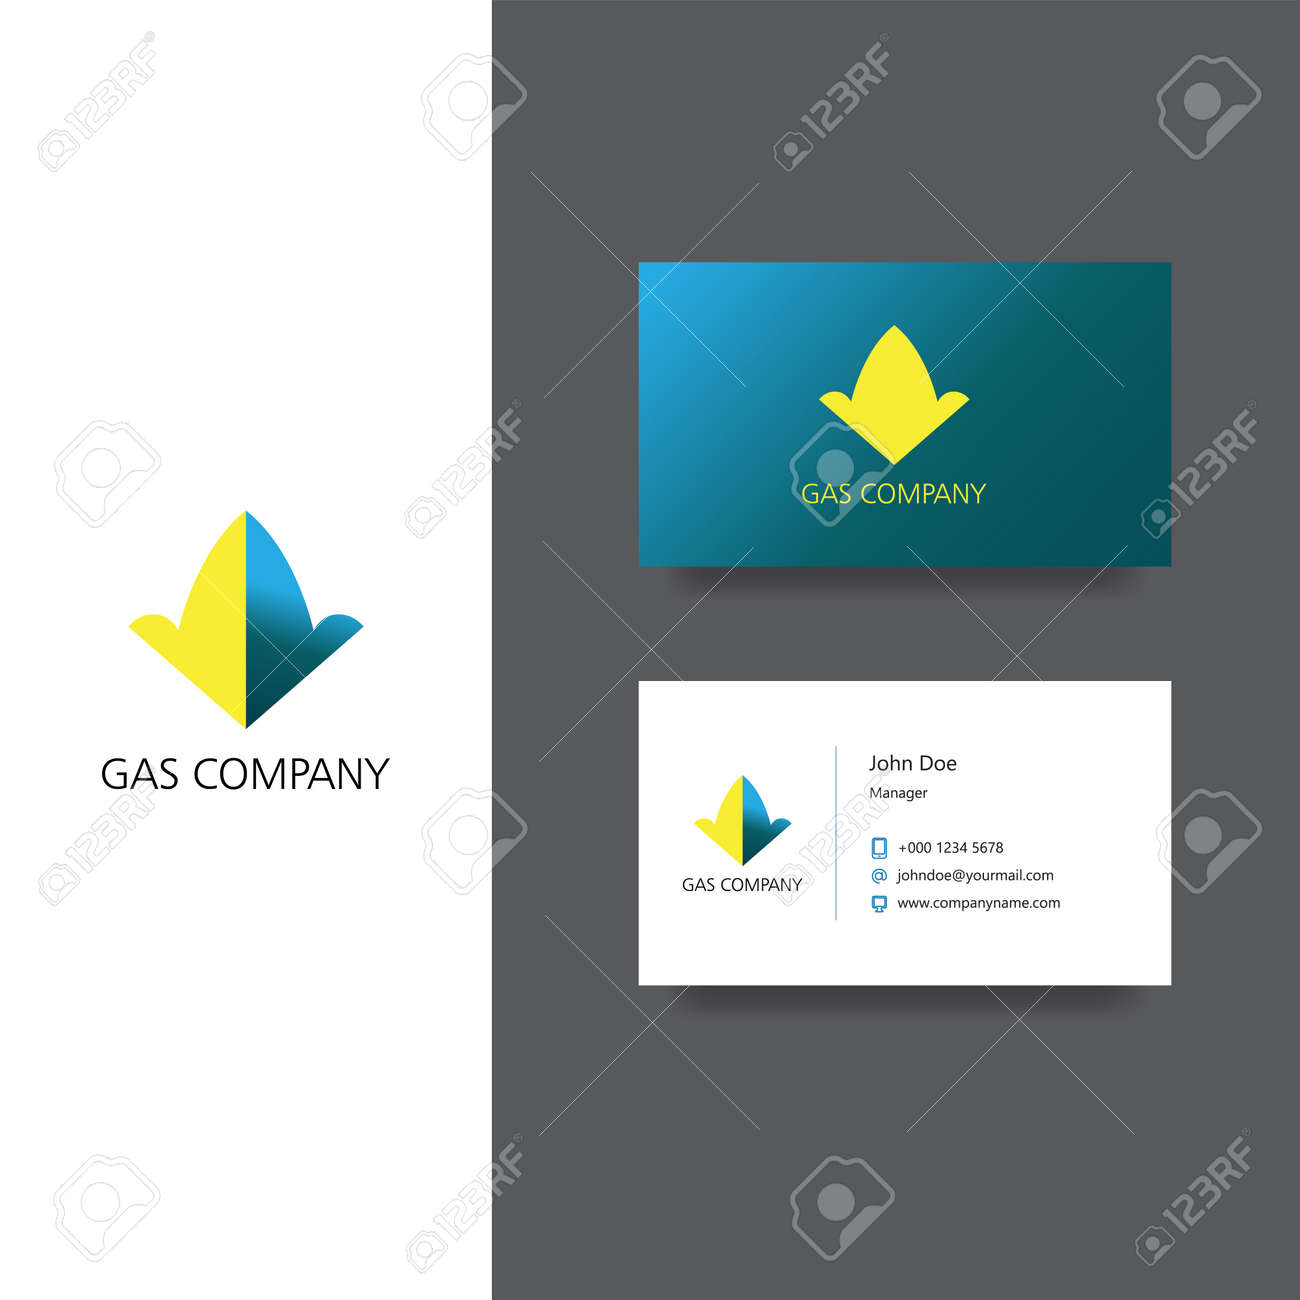 Garbage Removal Company Land Business Card Template Royalty Free ...